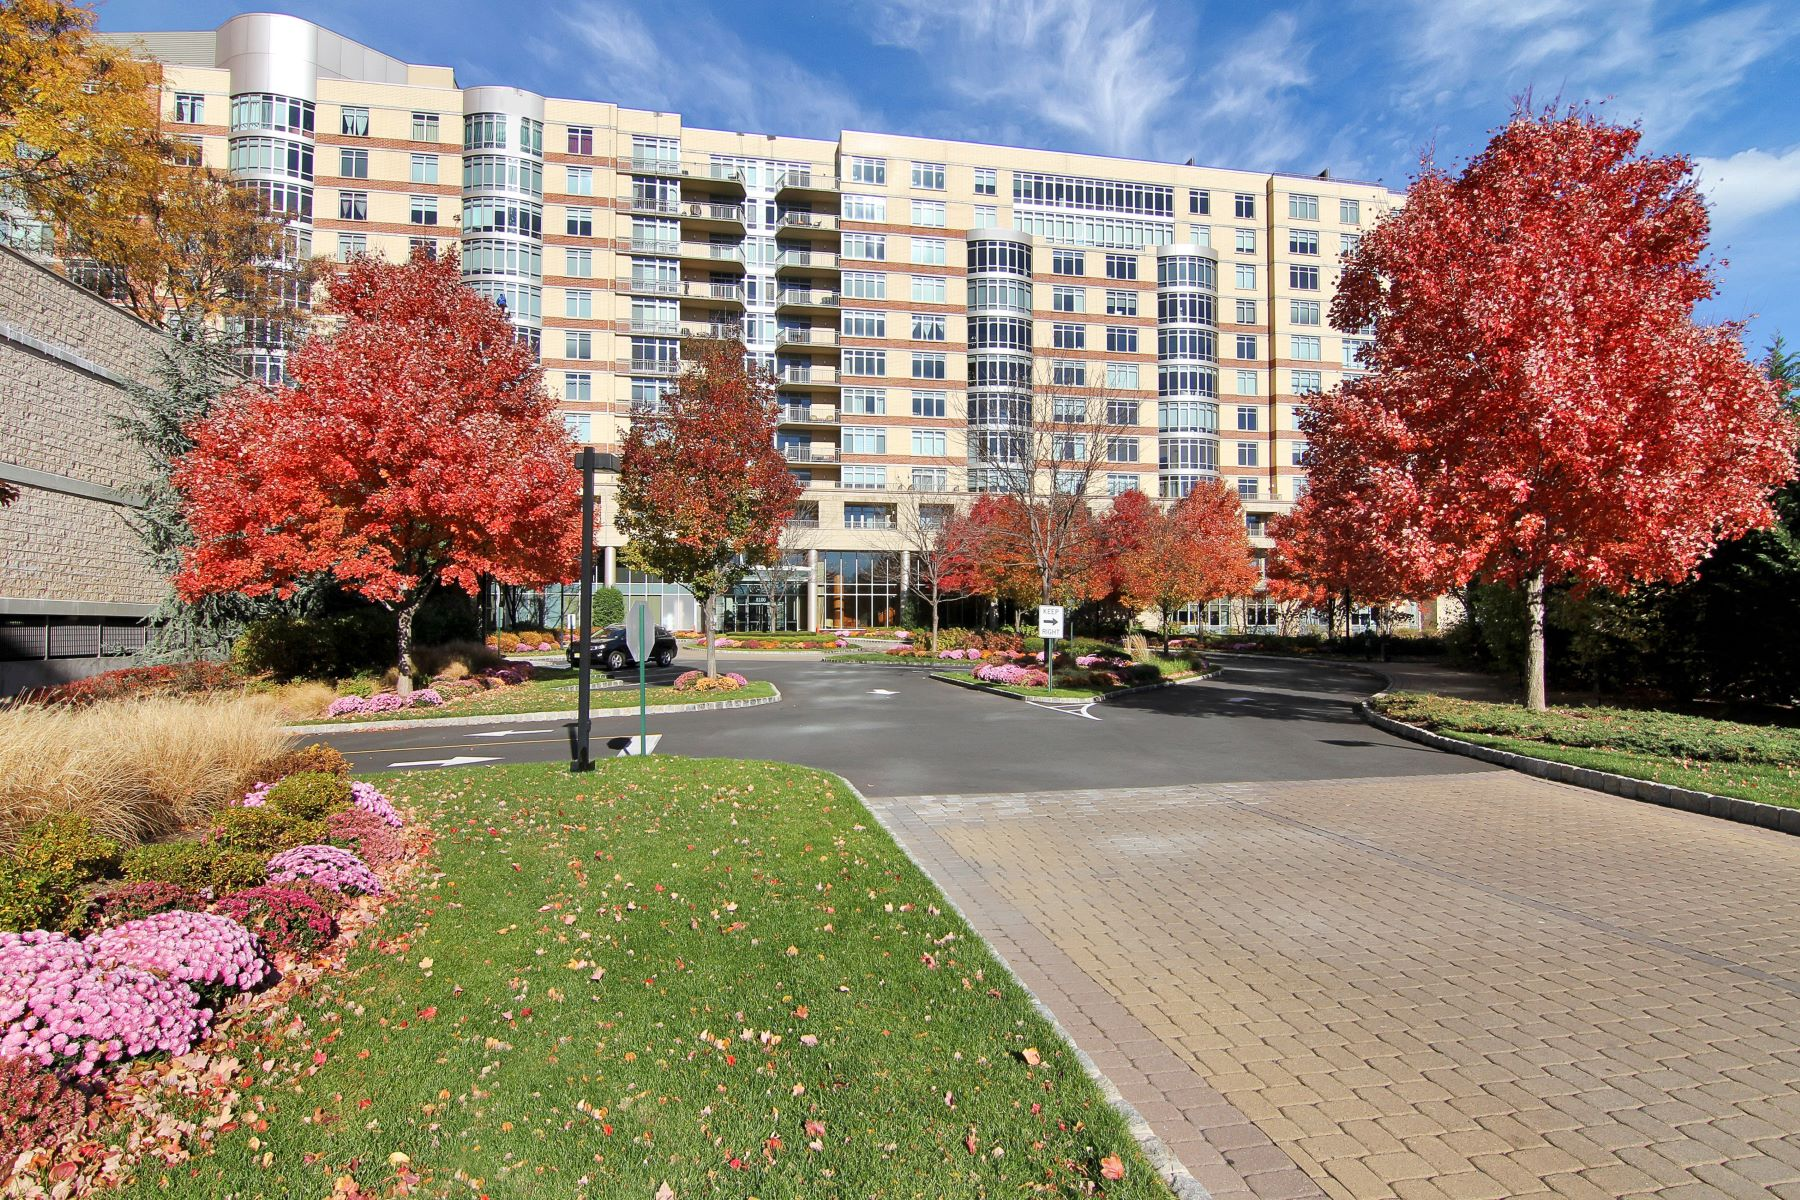 Single Family Homes for Sale at The Watermark 8100 River Road #905 North Bergen, New Jersey 07047 United States